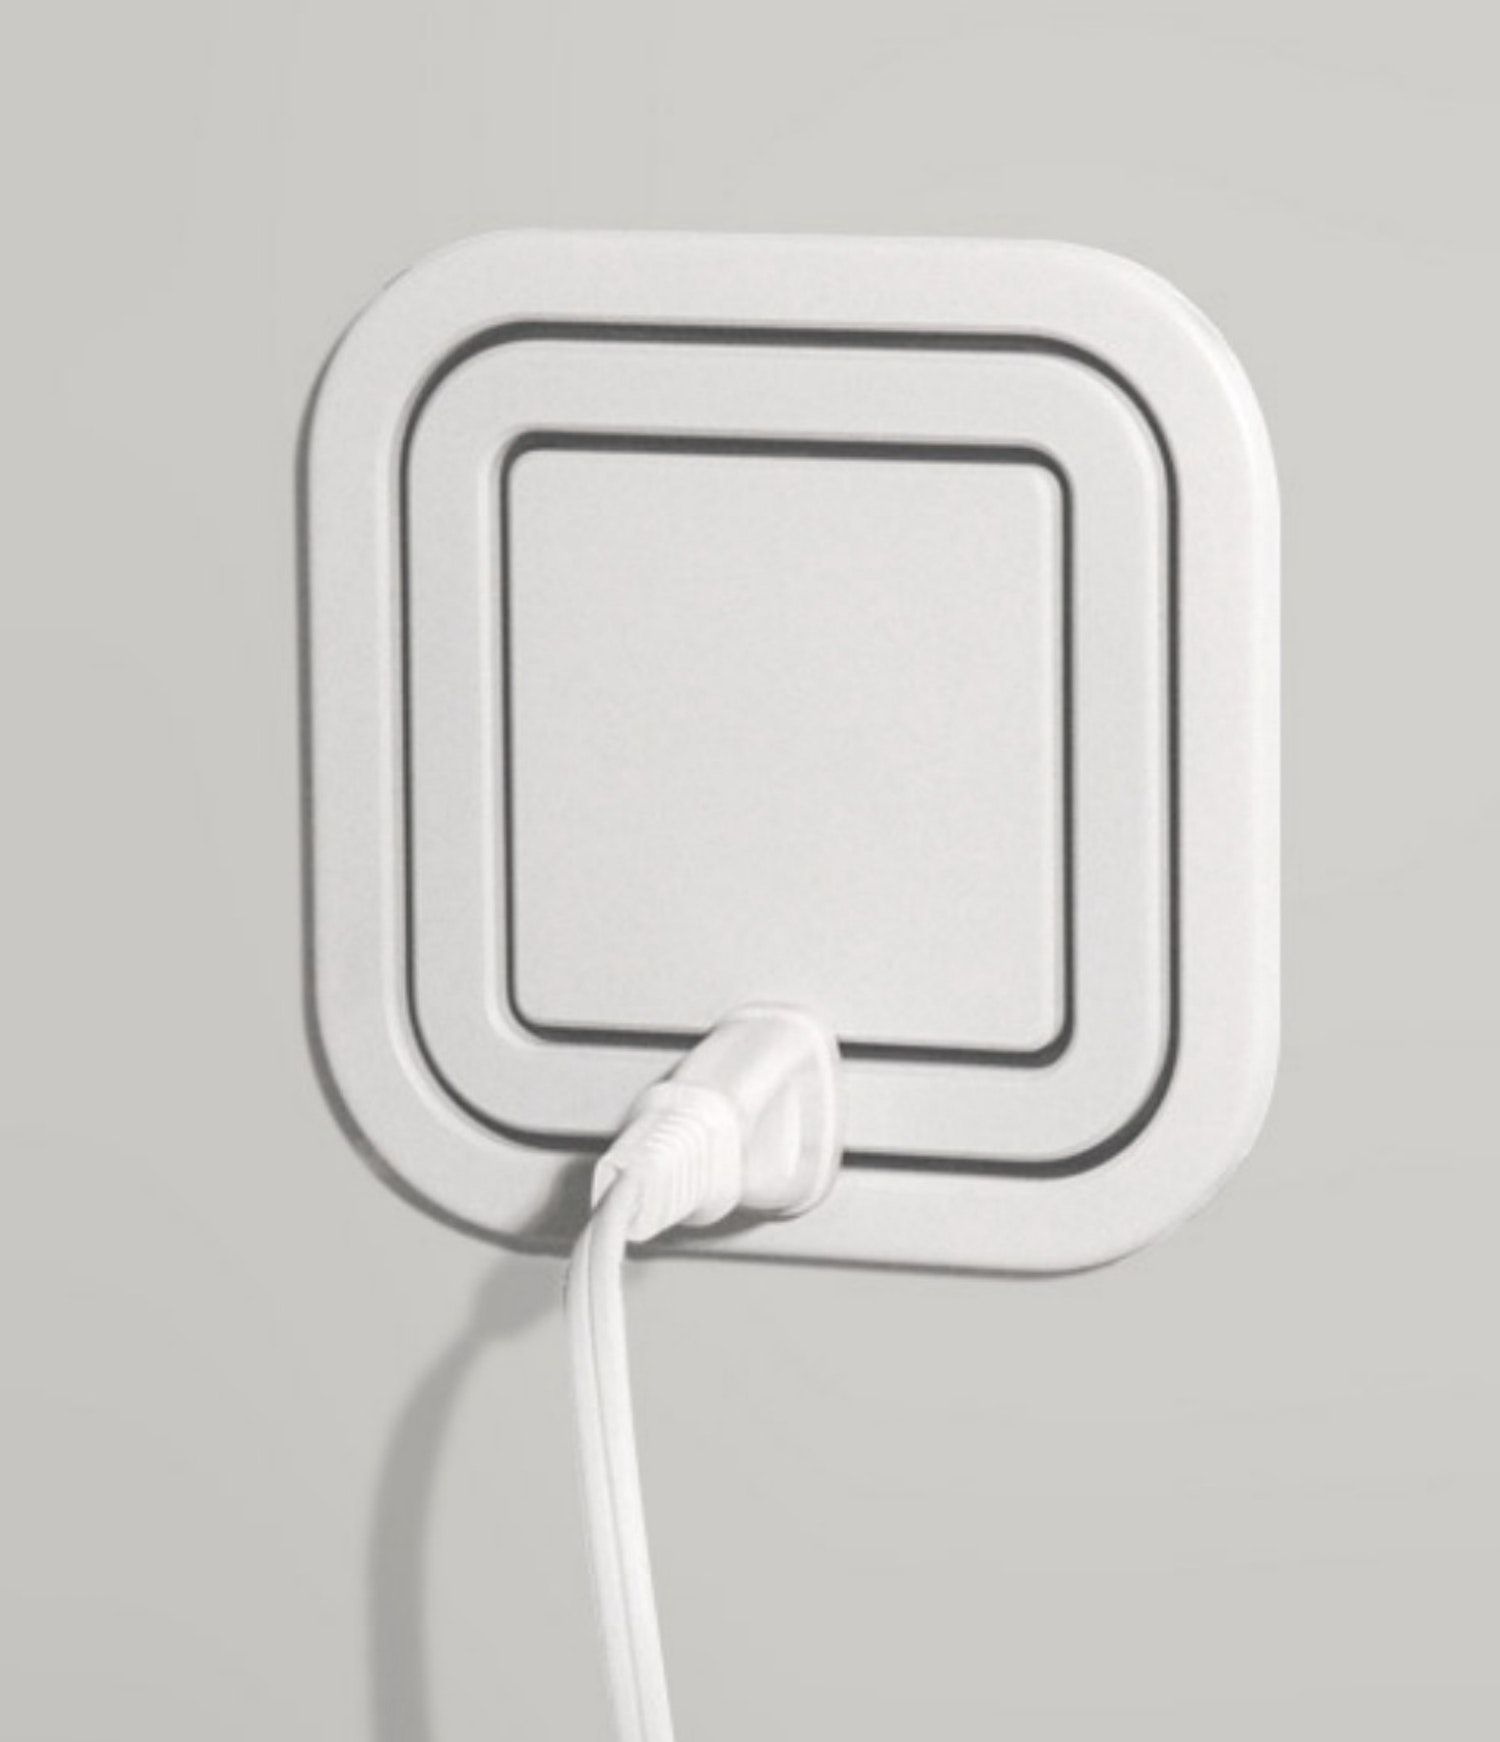 Node Power Outlet Allows Users to Plug In At Every Angle | Outlets ...